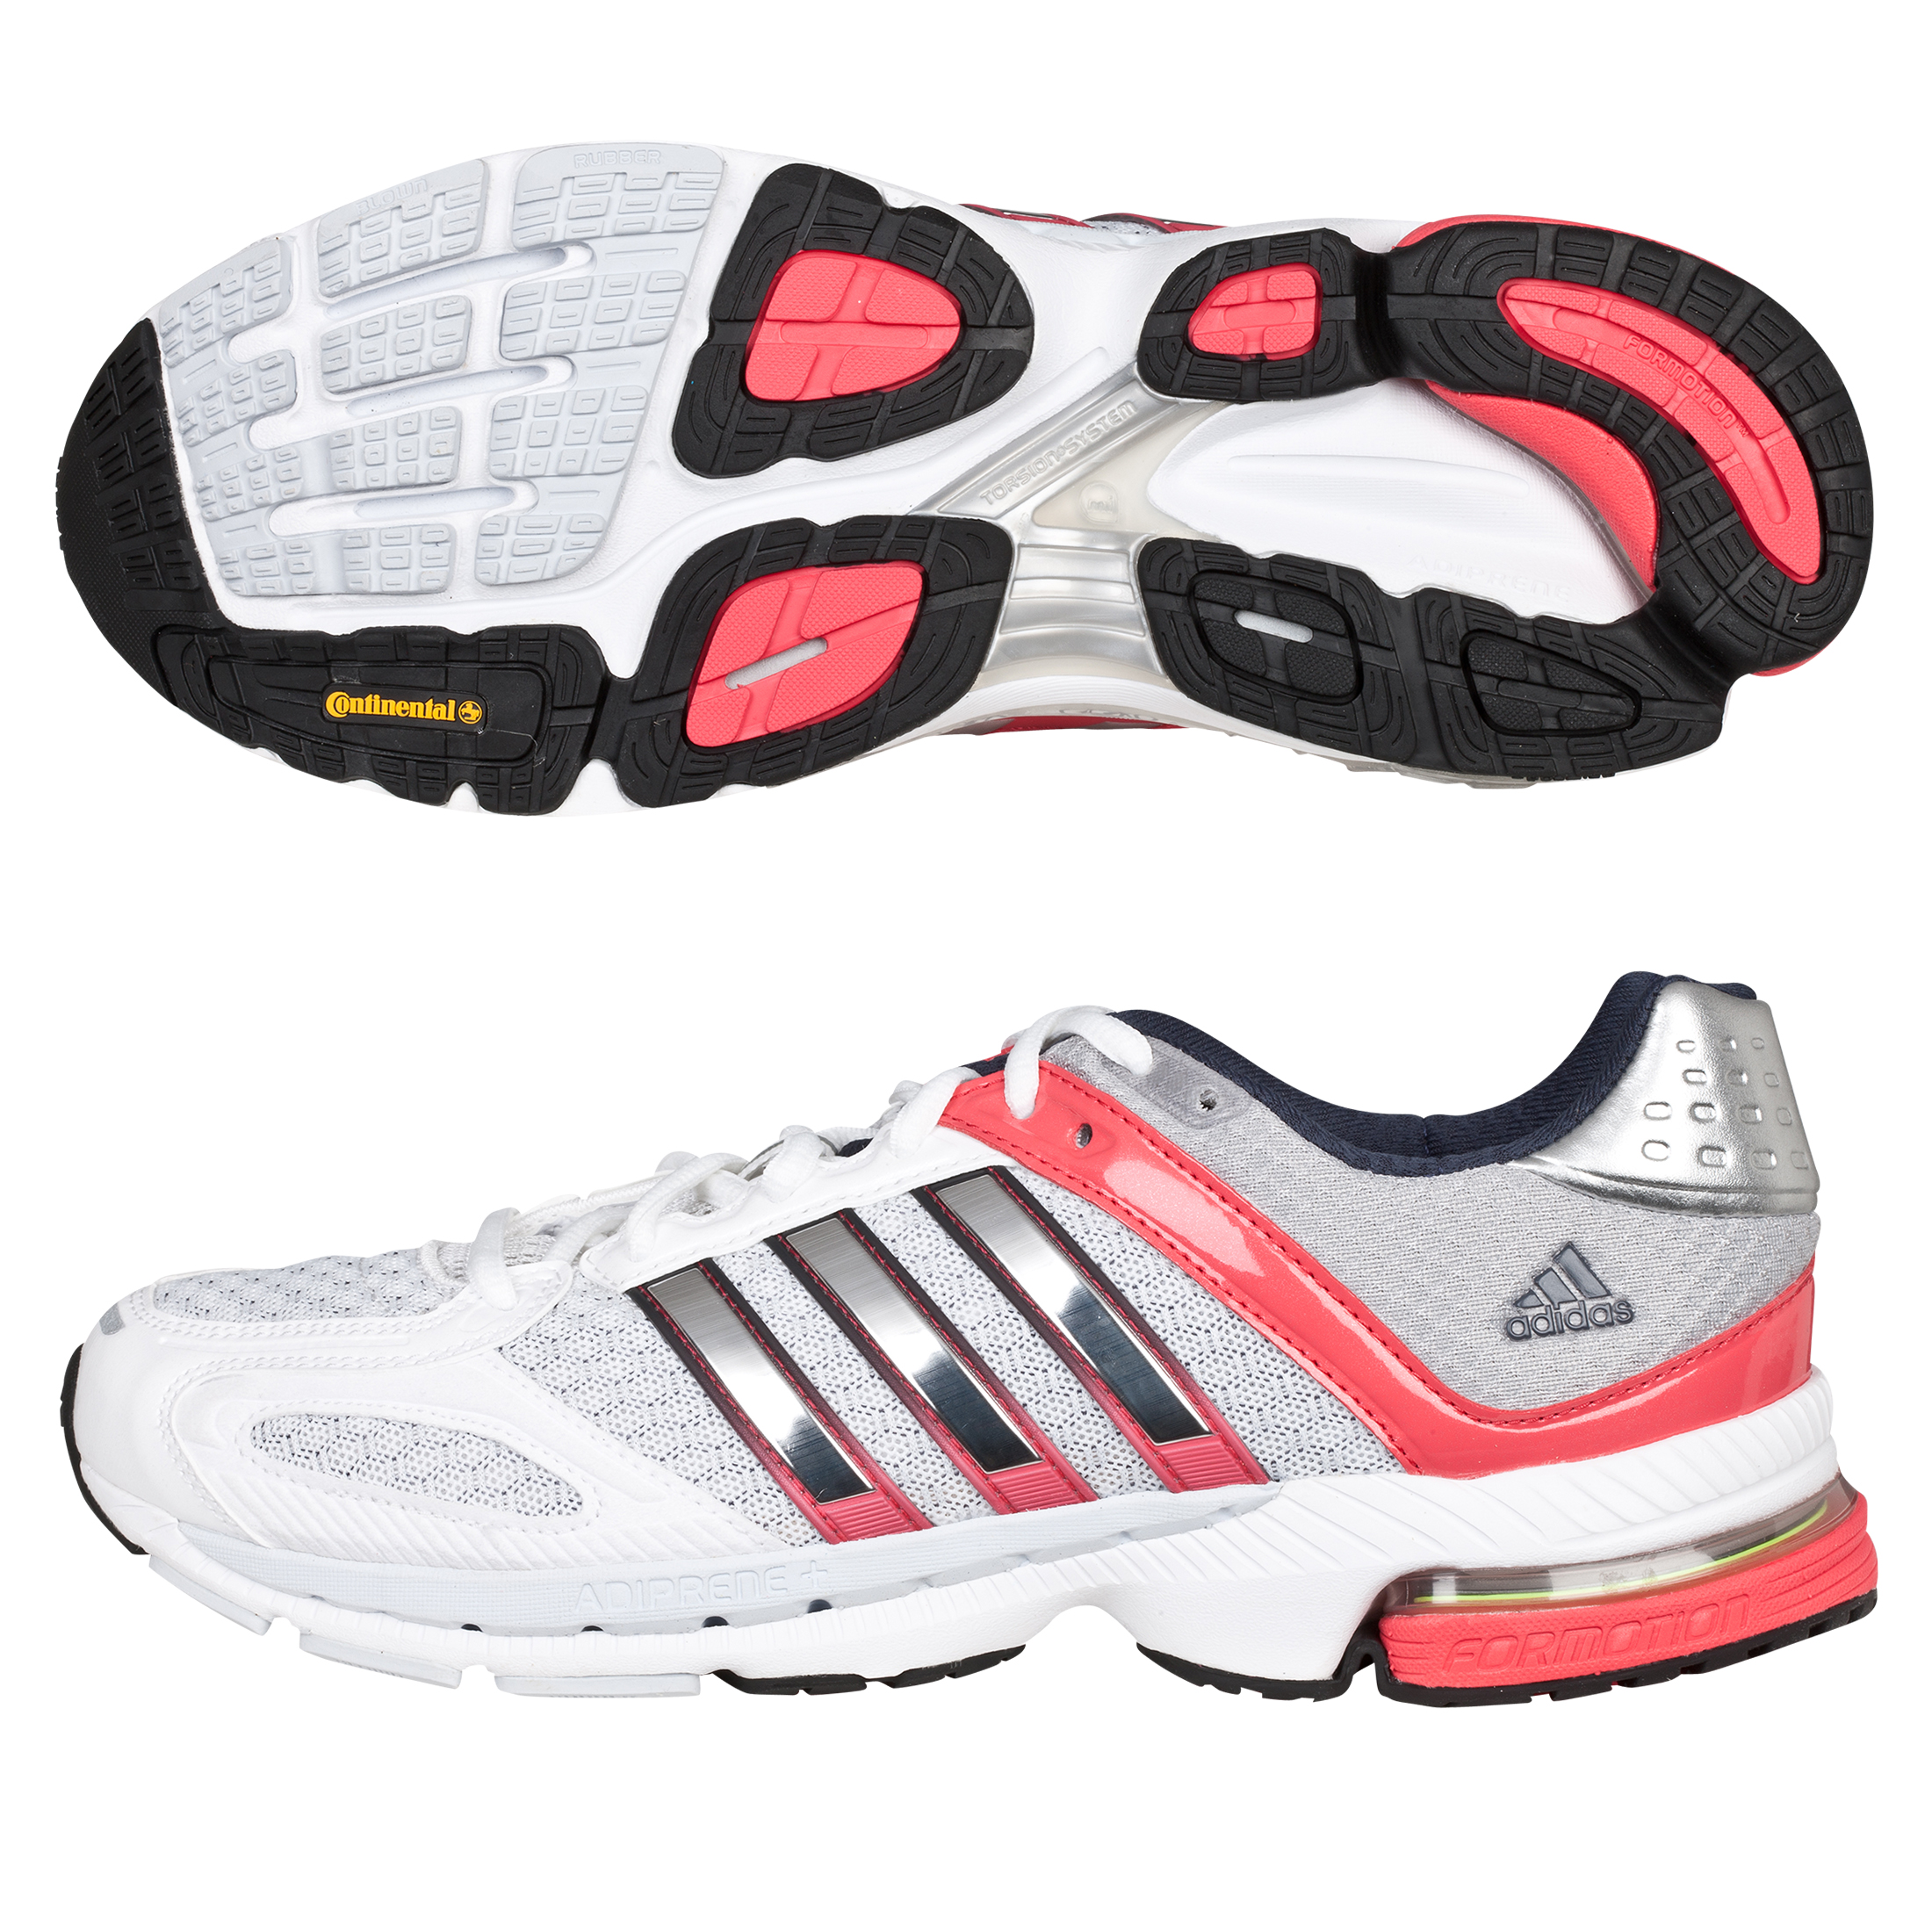 Adidas Super Nova Sequence 5 Trainer - Womens